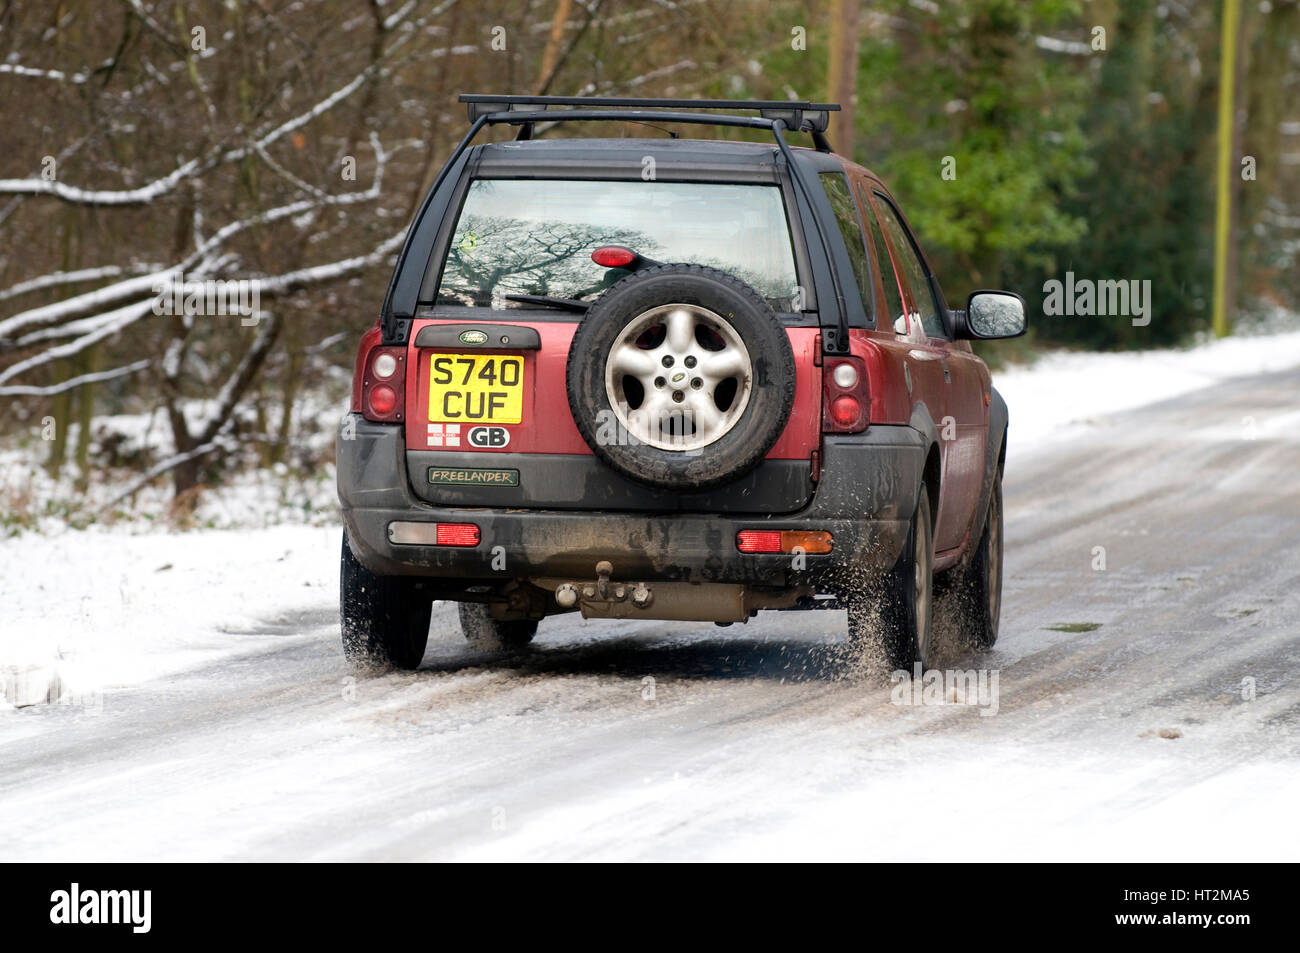 1998 Land Rover Freelander driving on icy road 2009 Artist: Unknown. - Stock Image